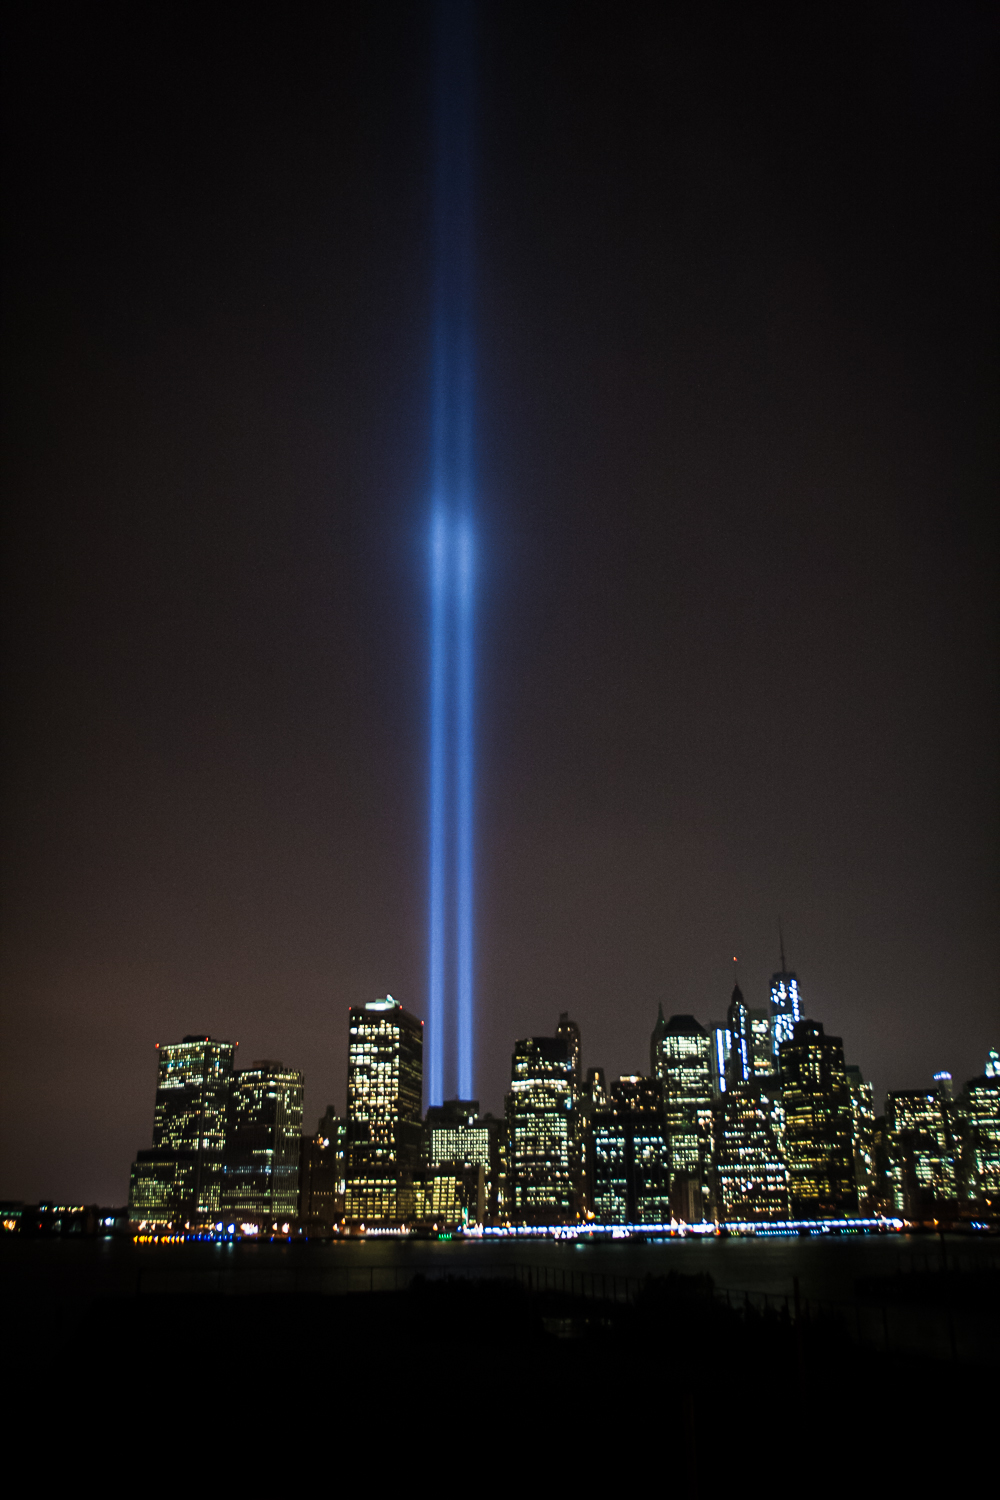 9-11 Light Tribute